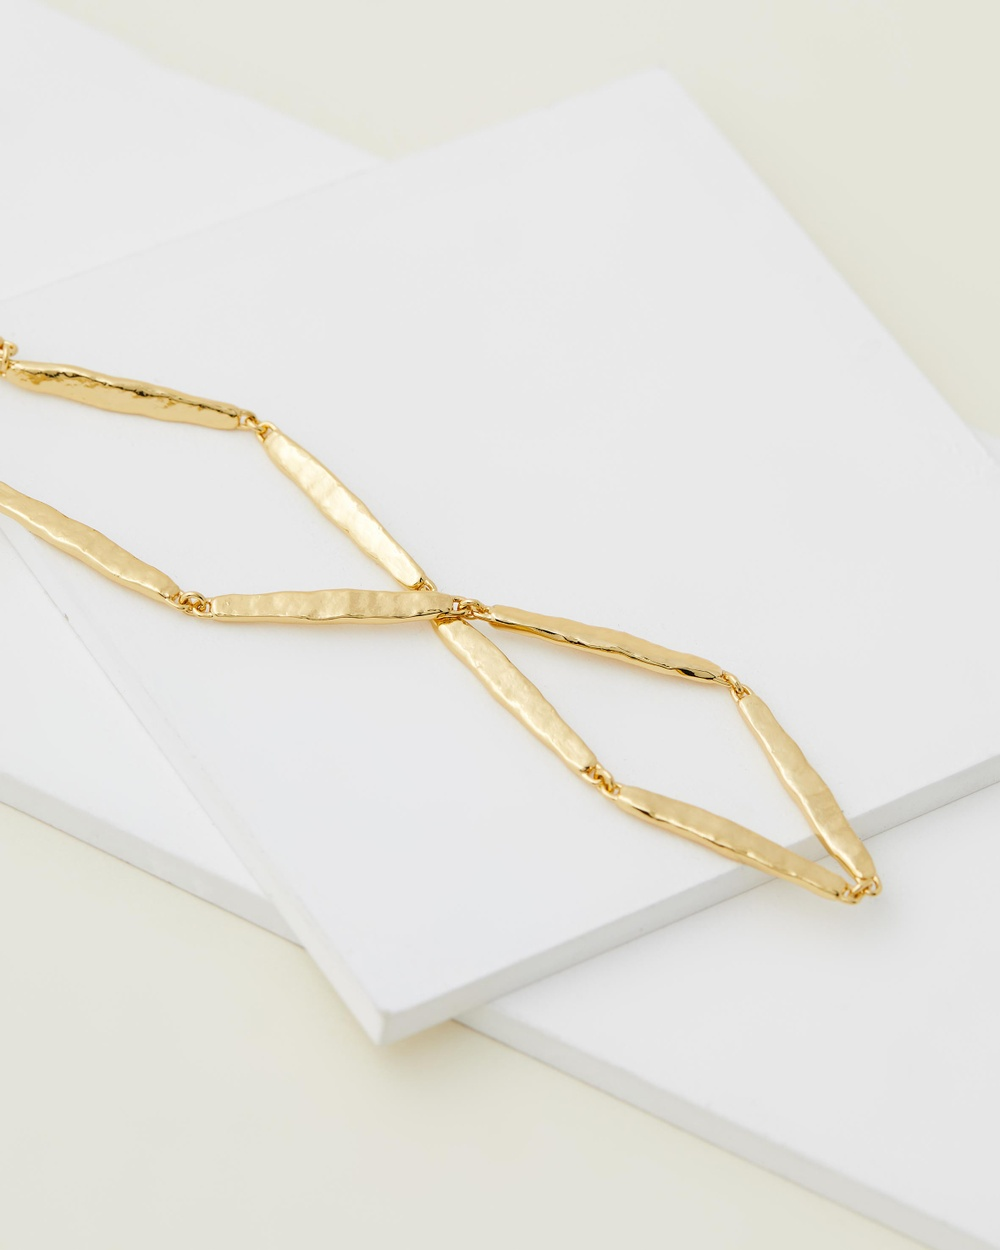 Brie Leon Frida Choker Necklace Jewellery Brass Base, Gold Plated